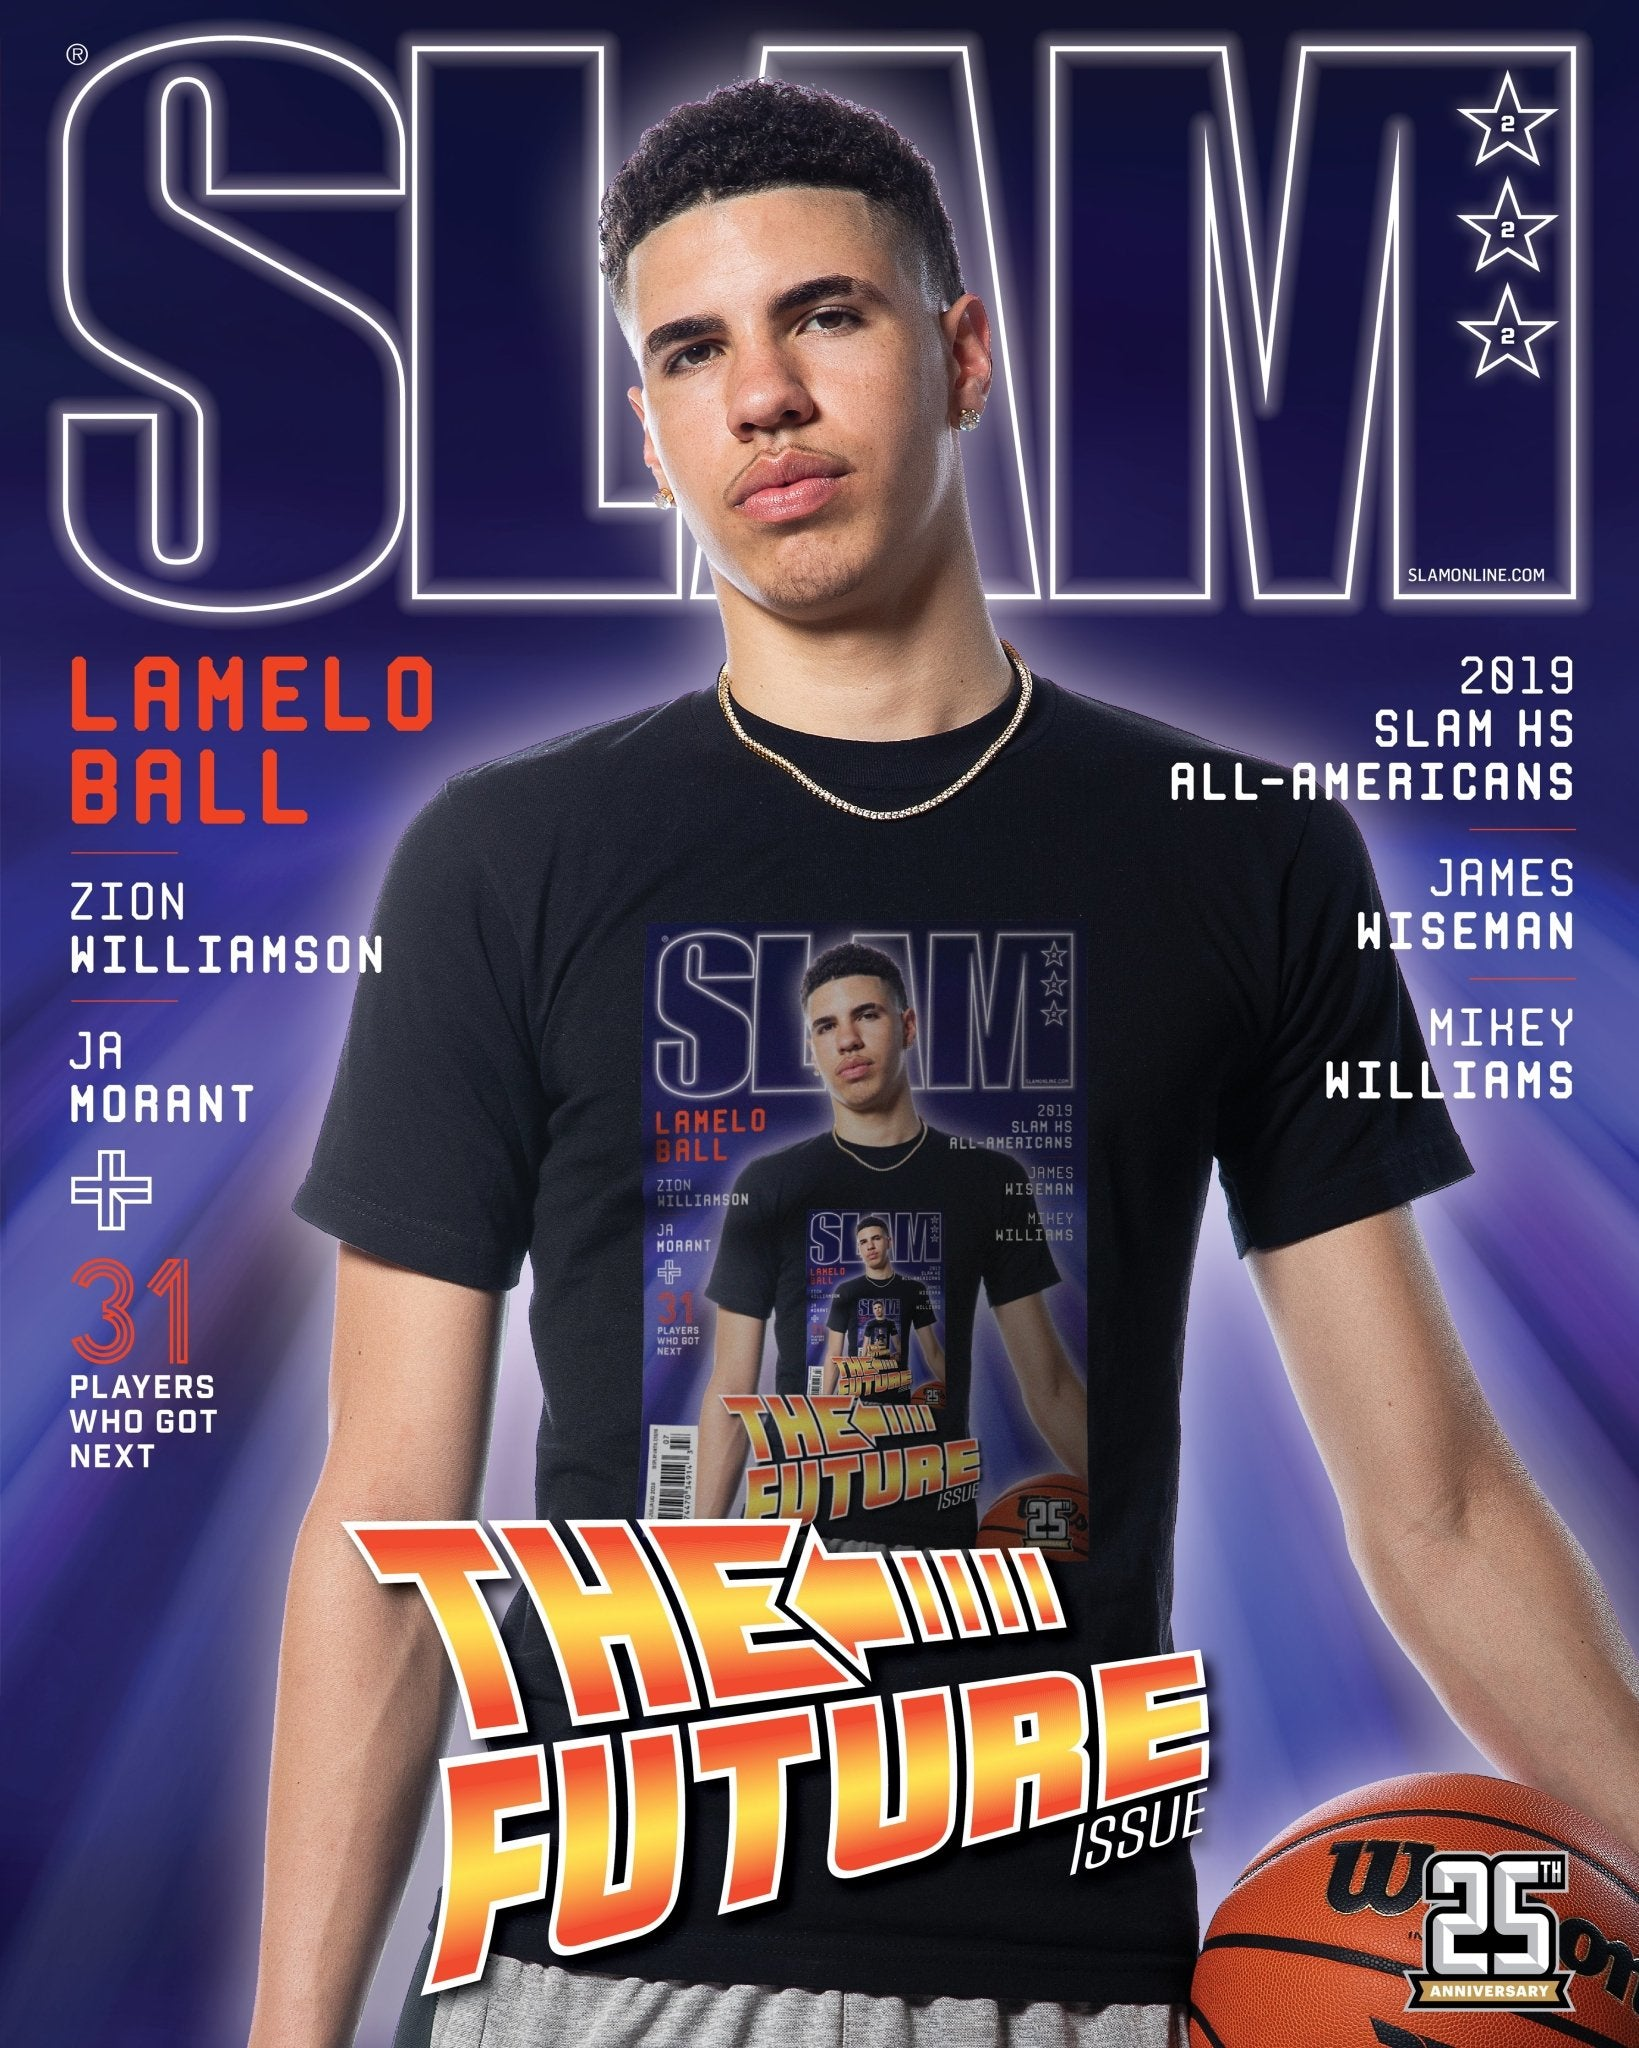 SLAM July/August 2019 (LaMelo Ball-222) - SLAM